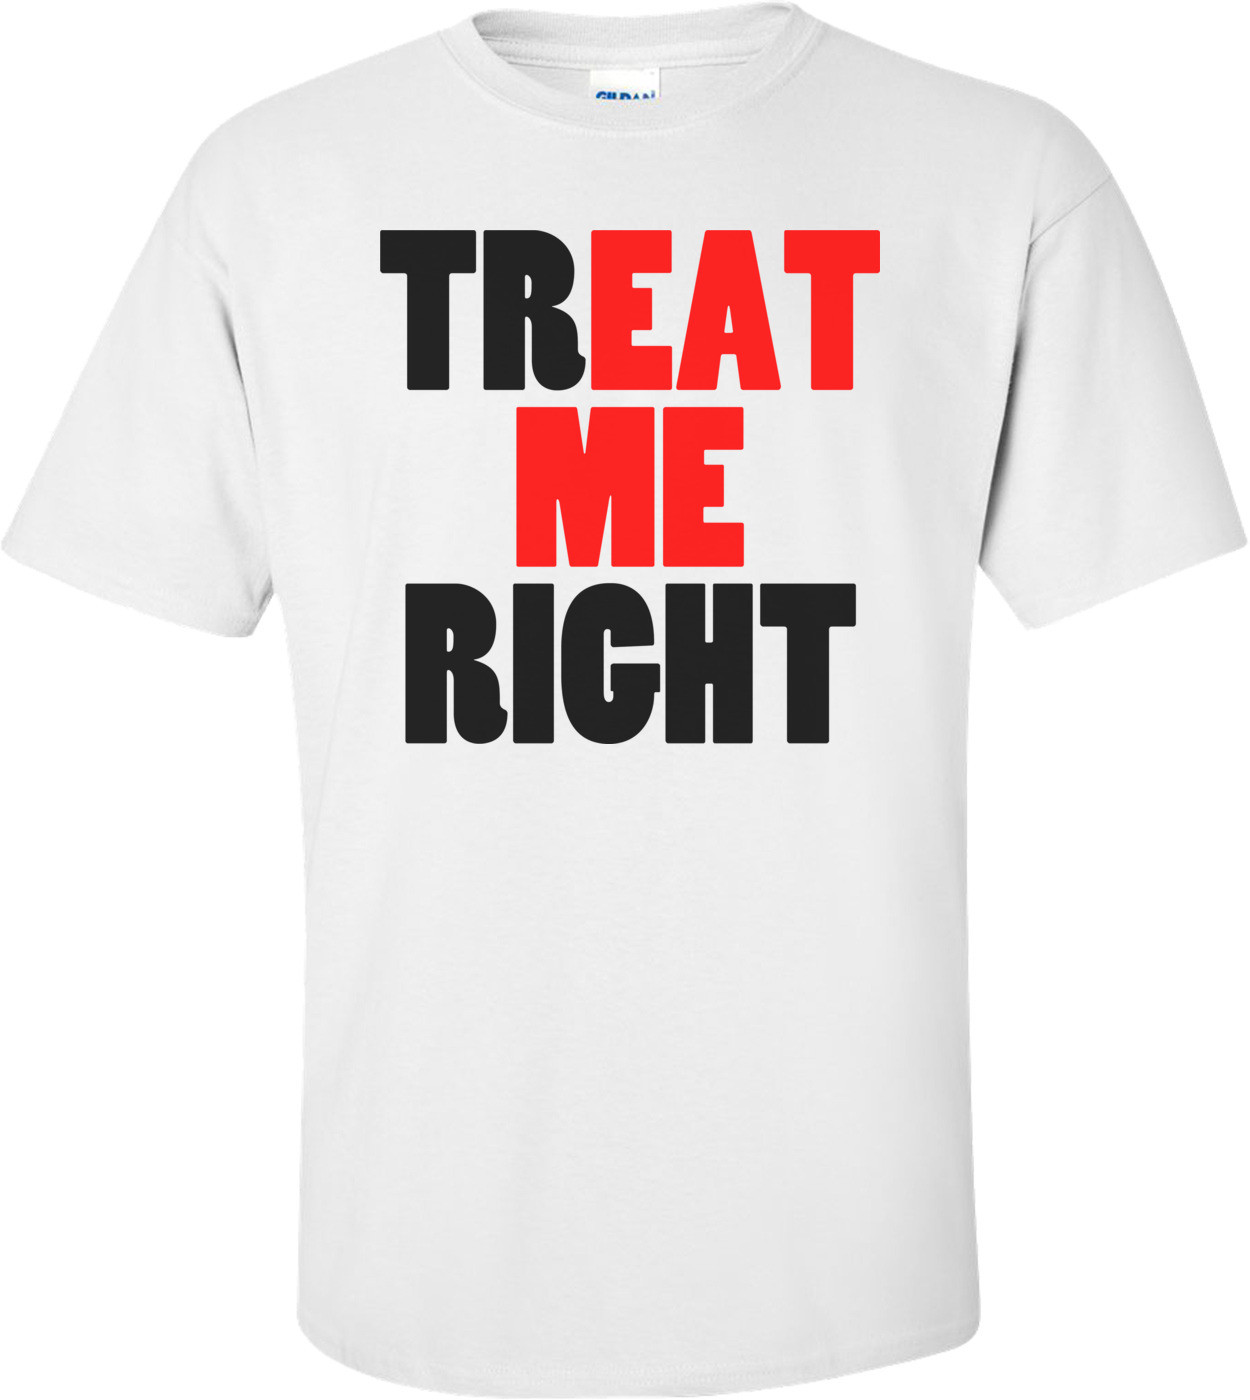 Treat Me Right Offensive T-shirt